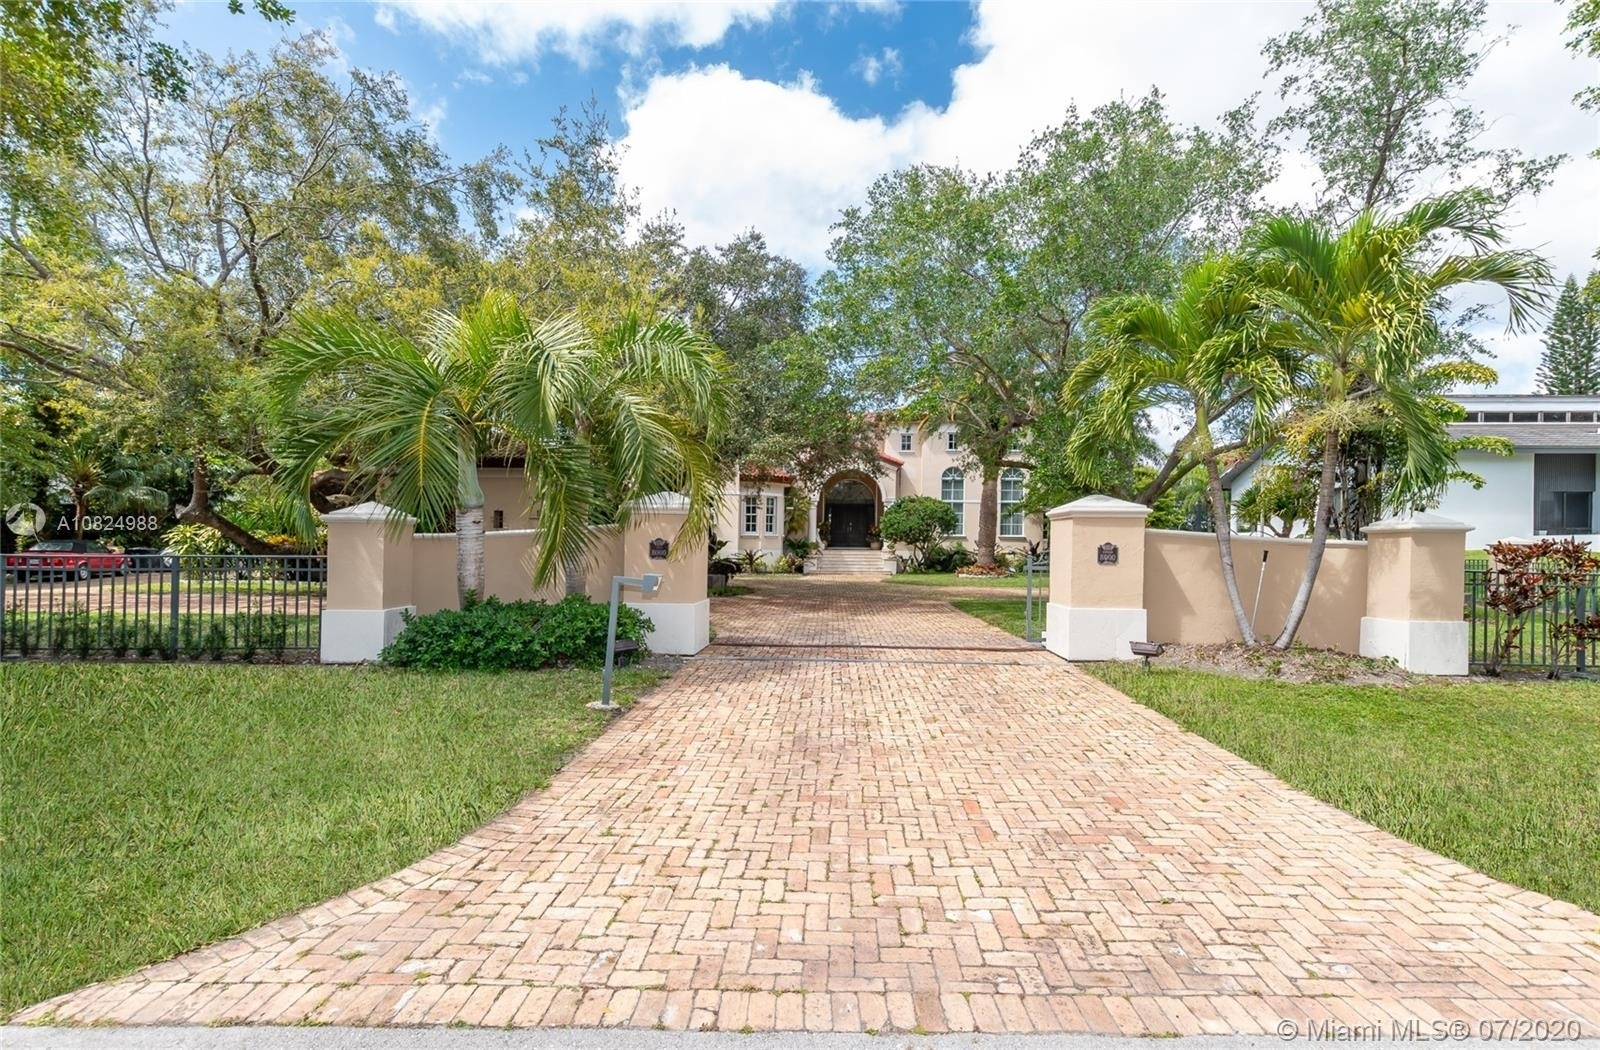 Property at Cocoplum, Coral Gables, FL 33143